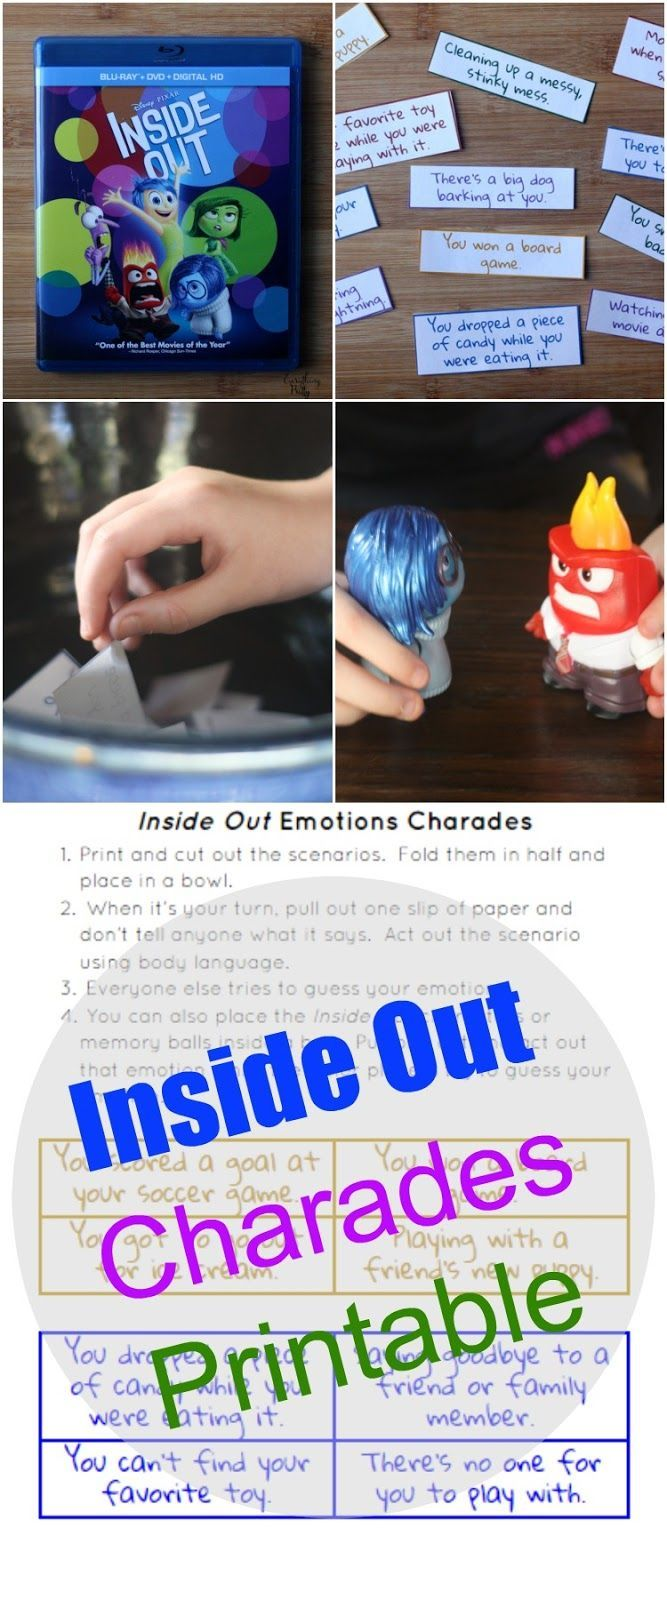 Teaching emotions to children with autism with Inside Out charades.  Includes a free printable. #InsideOutEmotions [ad] via www.yourbeautyblog.com